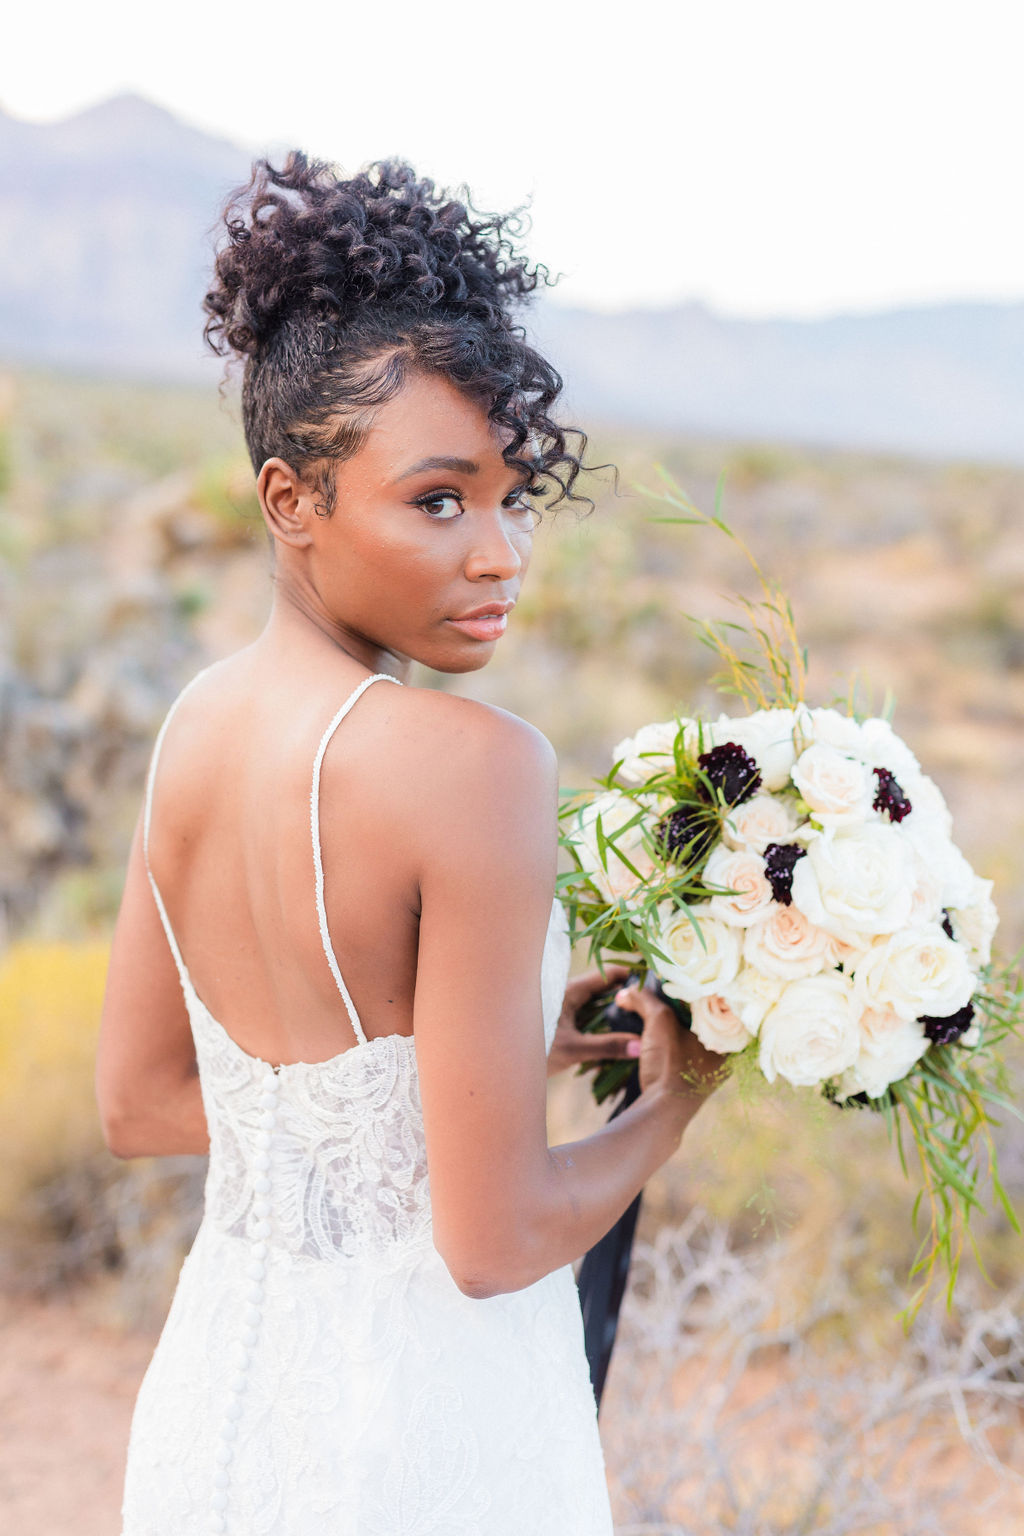 Natural Bridal Makeup Curly Hair Wedding Inspo Black And White Elizabeth Burgi Photography 2